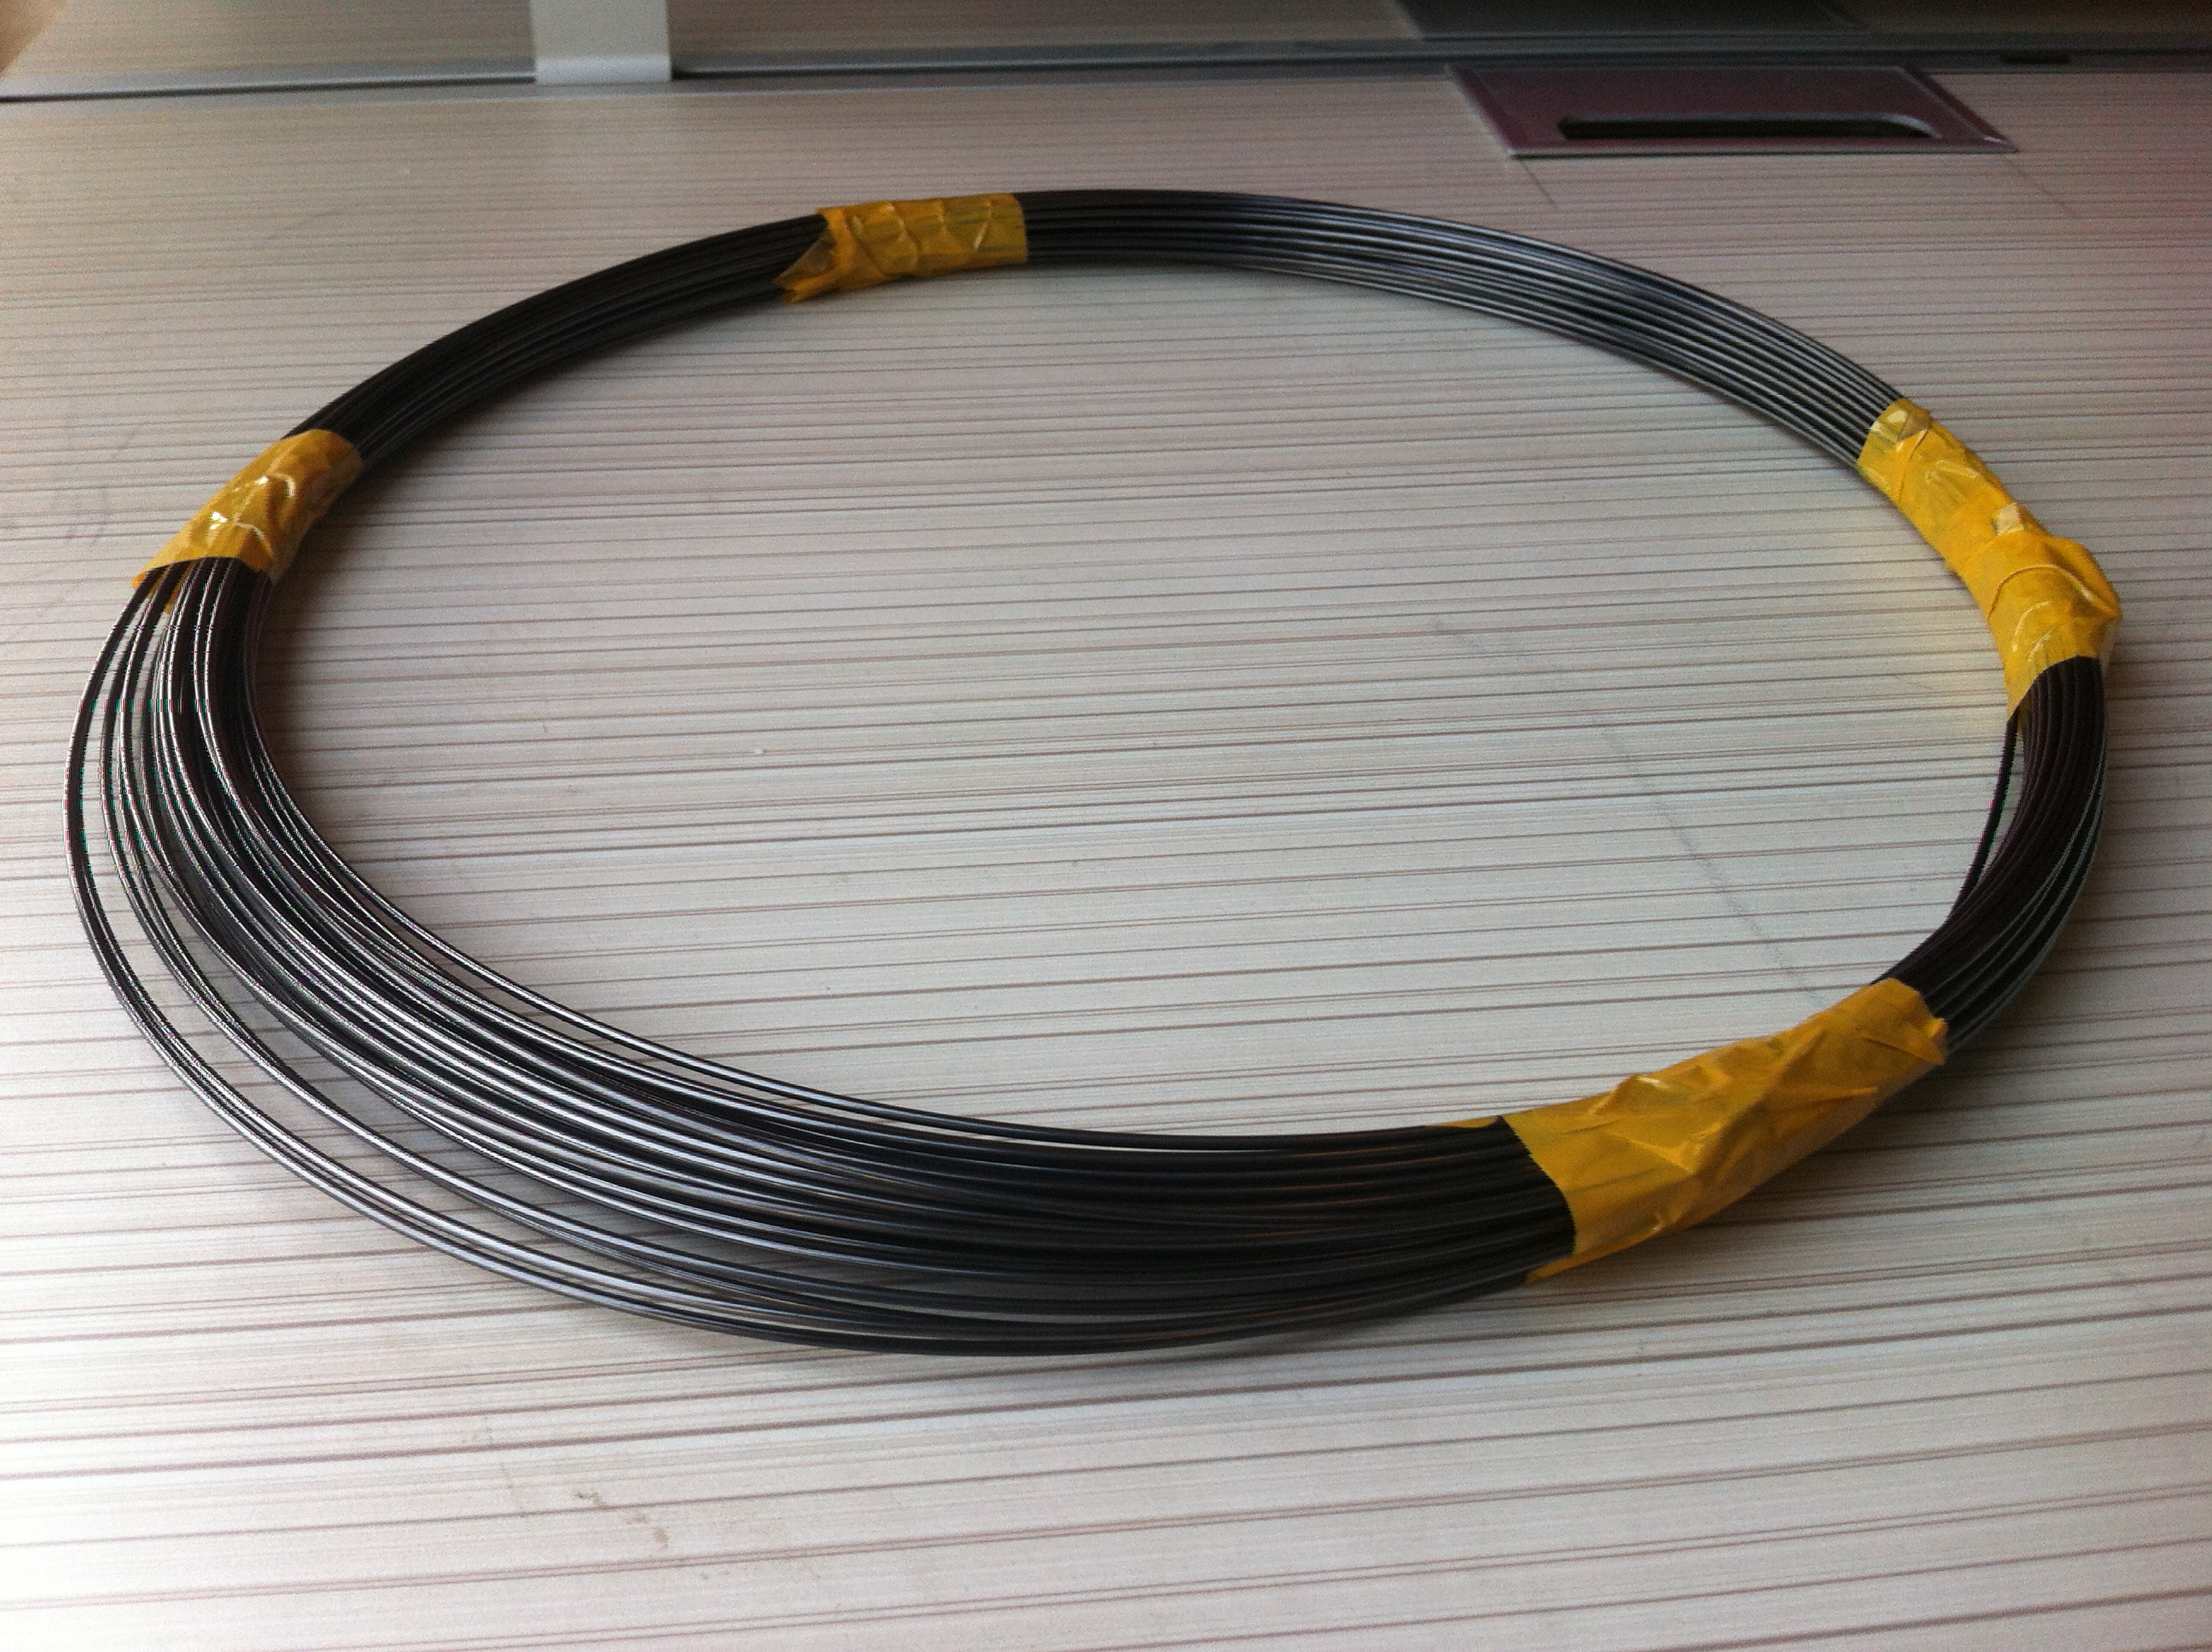 Molybdenum Wire Standard and Molybdenum Wire Grade